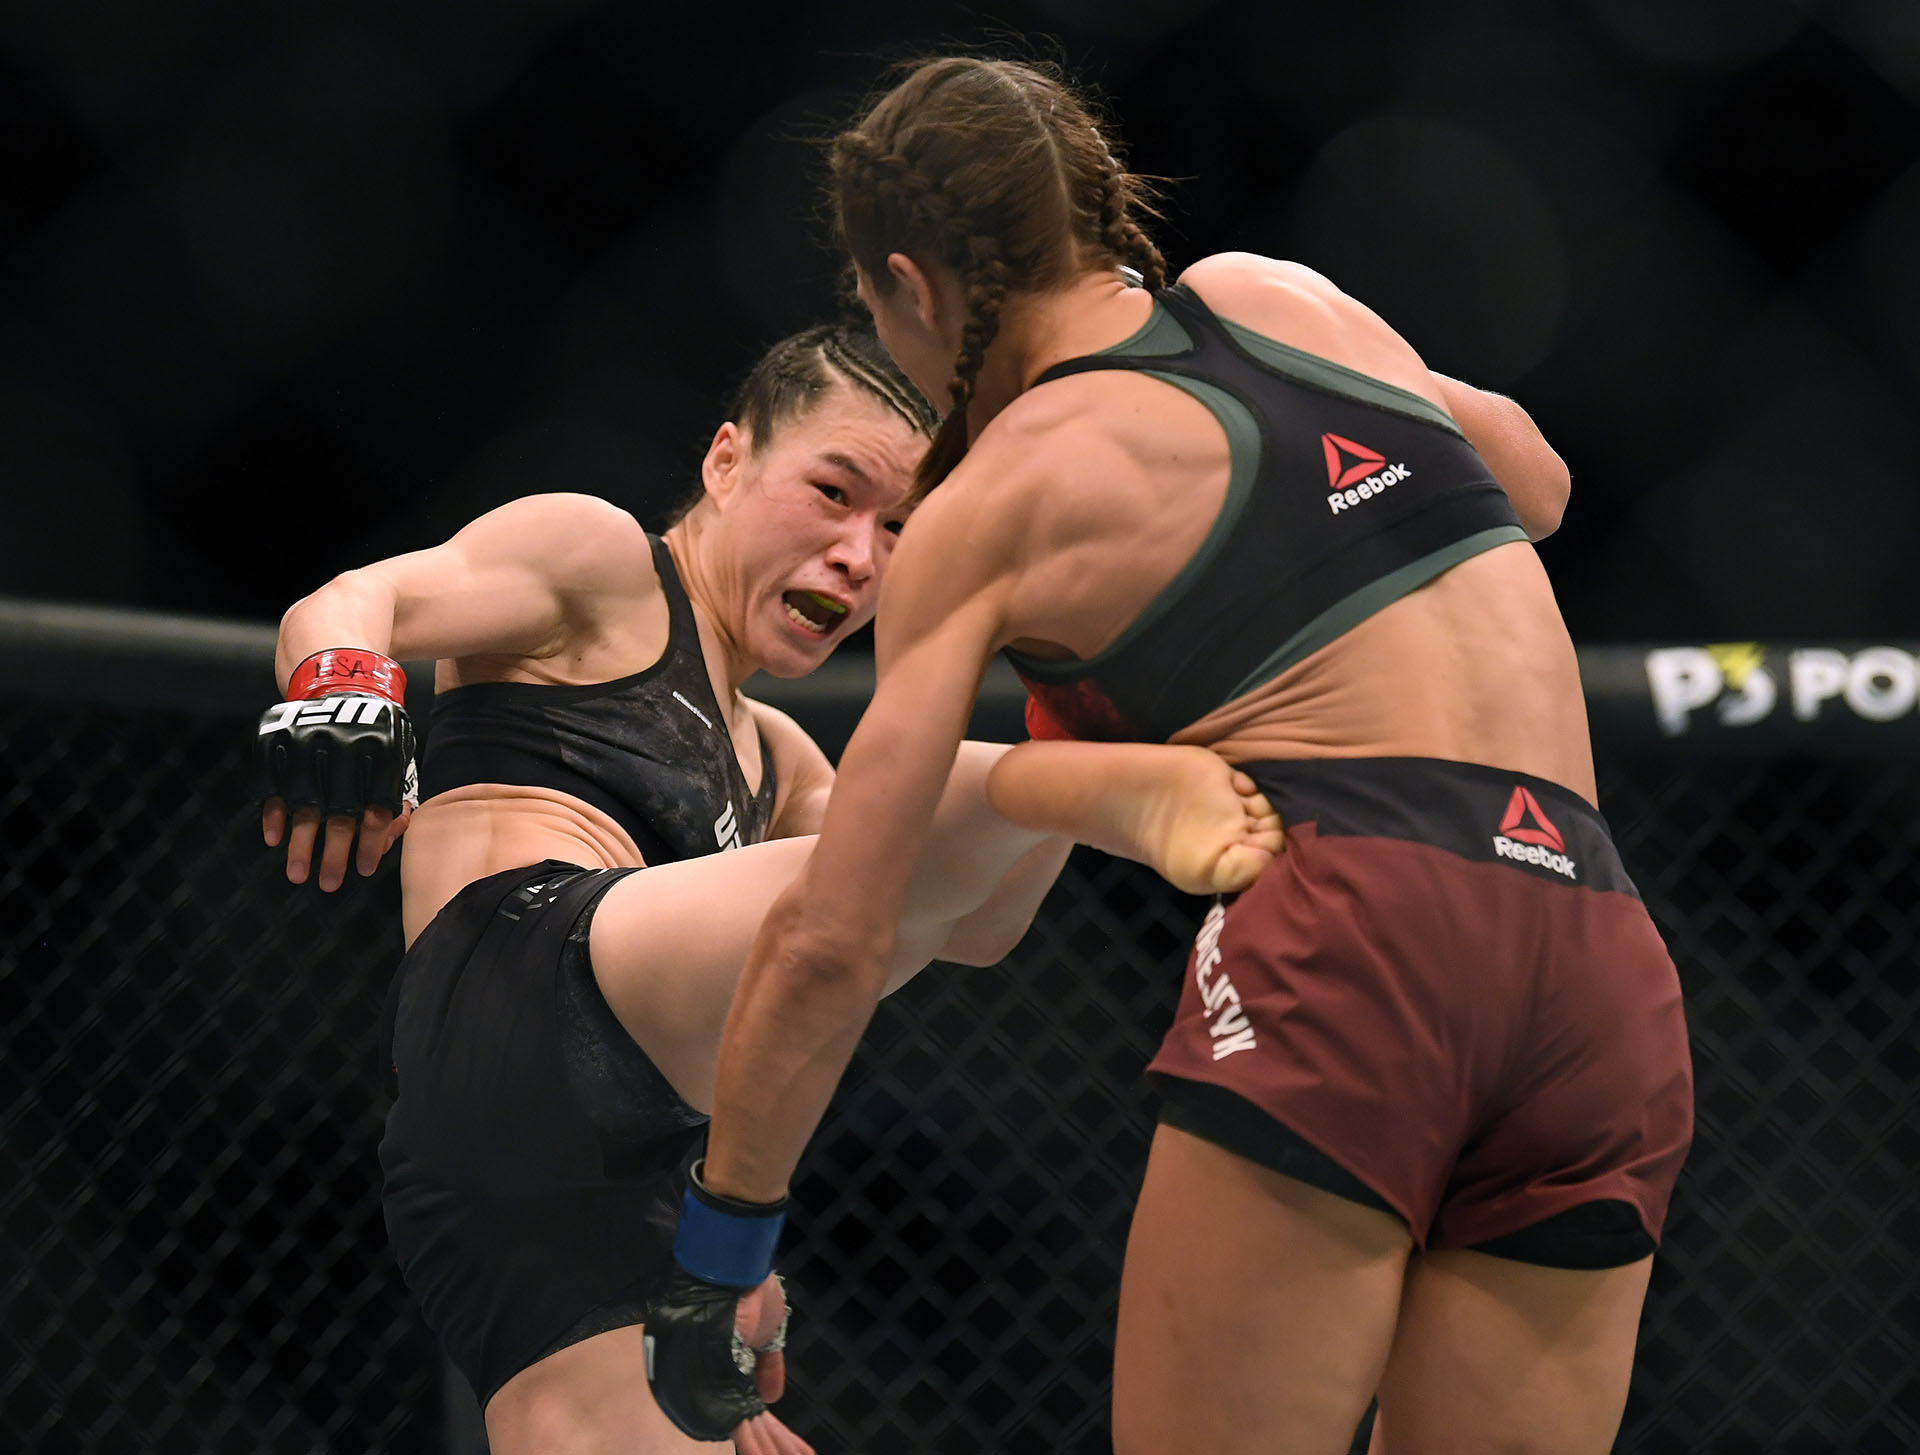 Weili Zhang kicks Joanna Jedrzejczyk during her split decision win to retain her strawweight title at T-Mobile Arena on March 07, 2020 in Las Vegas, Nevada. (Photo by Harry How/Getty Images)